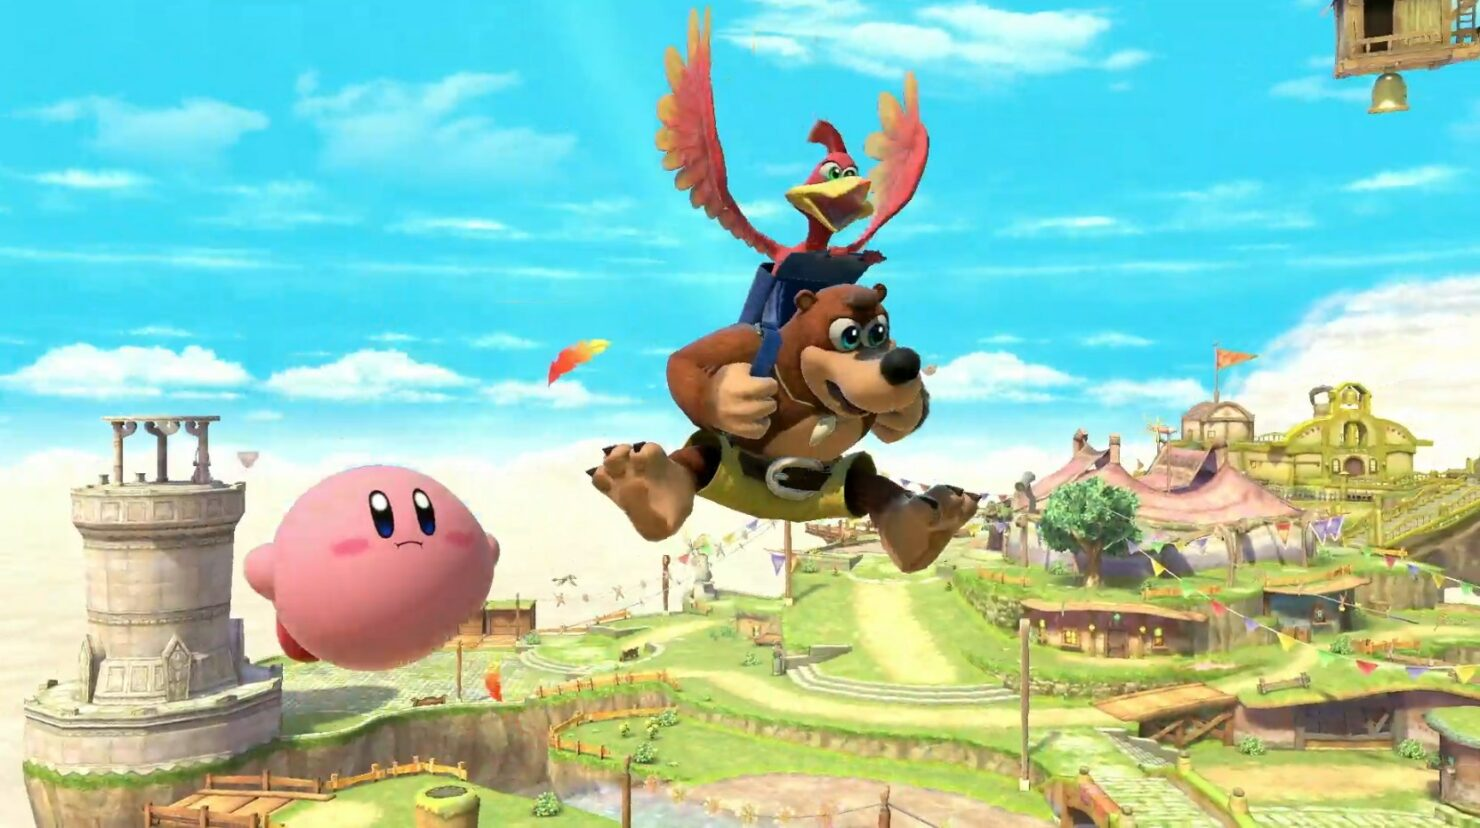 banjo-and-kazooie-super-smash-bros-ultimate-switch-announced4